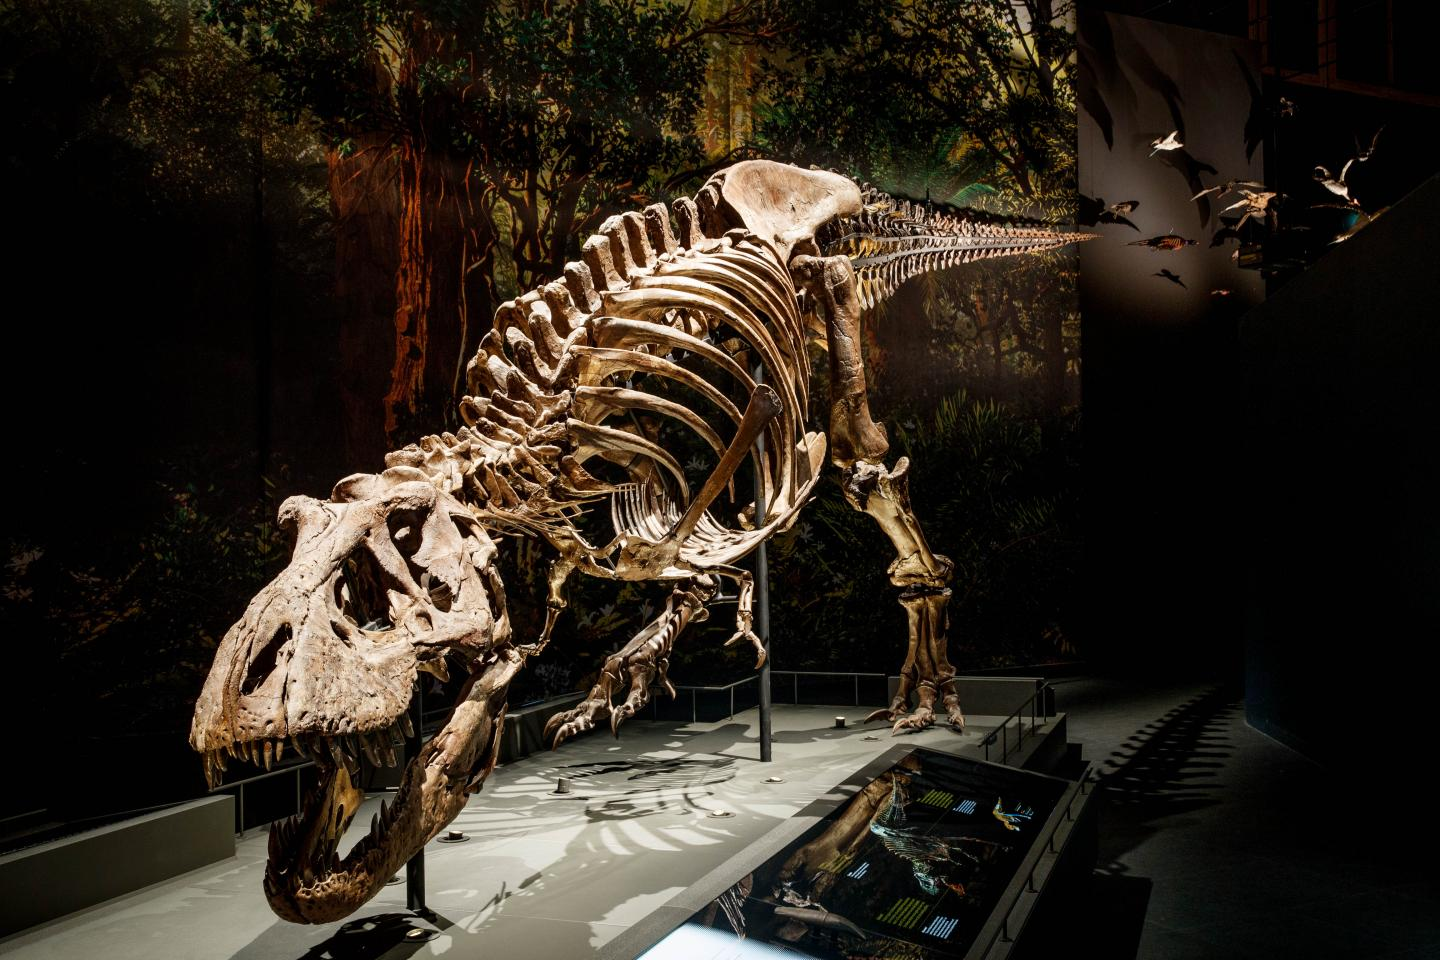 The model was based on the skeleton of